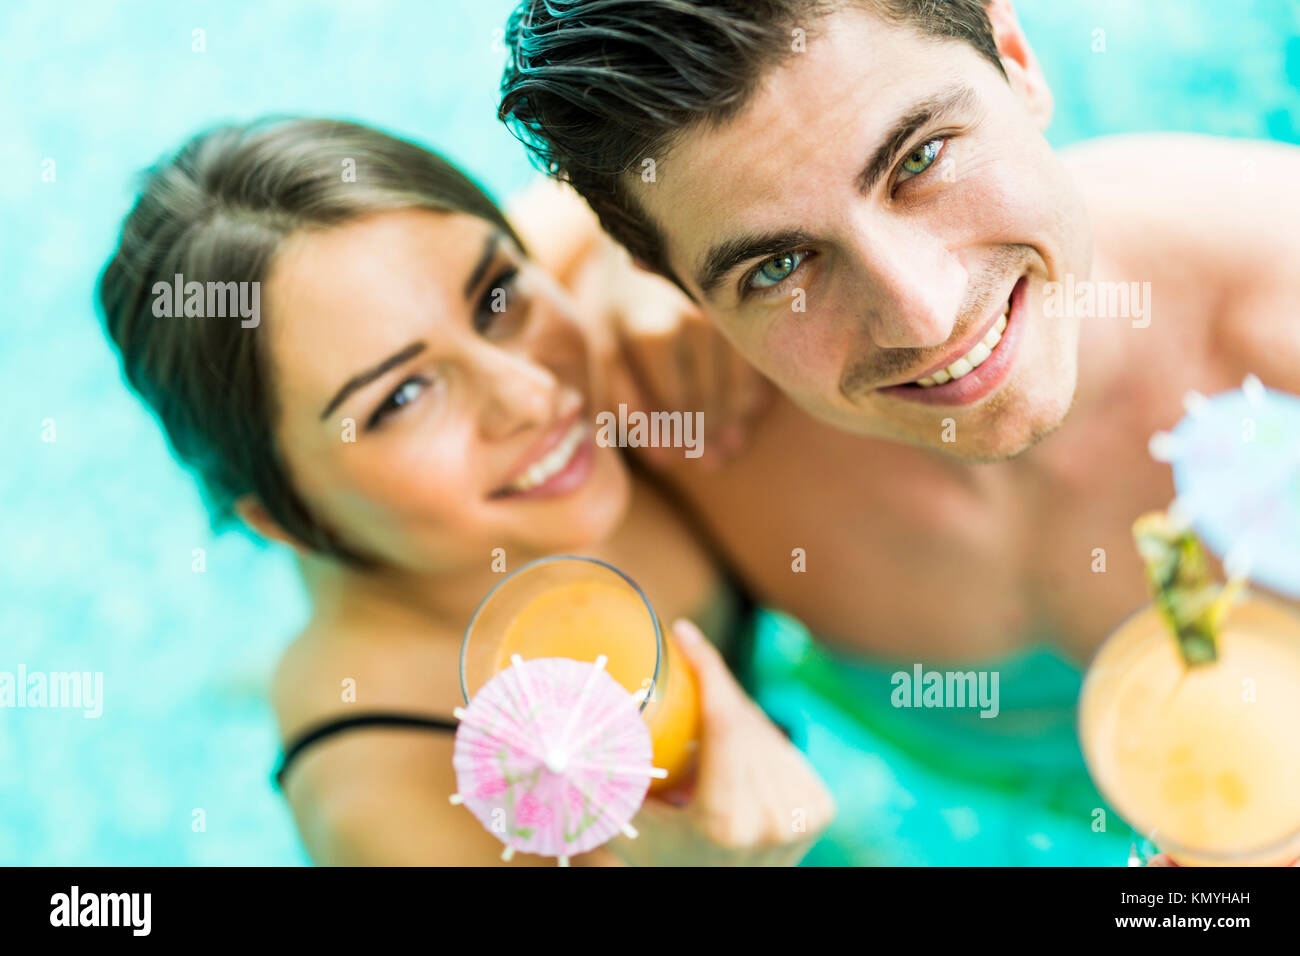 Portrait of a couple smiling and drinking a cocktail in a pool - Stock Image